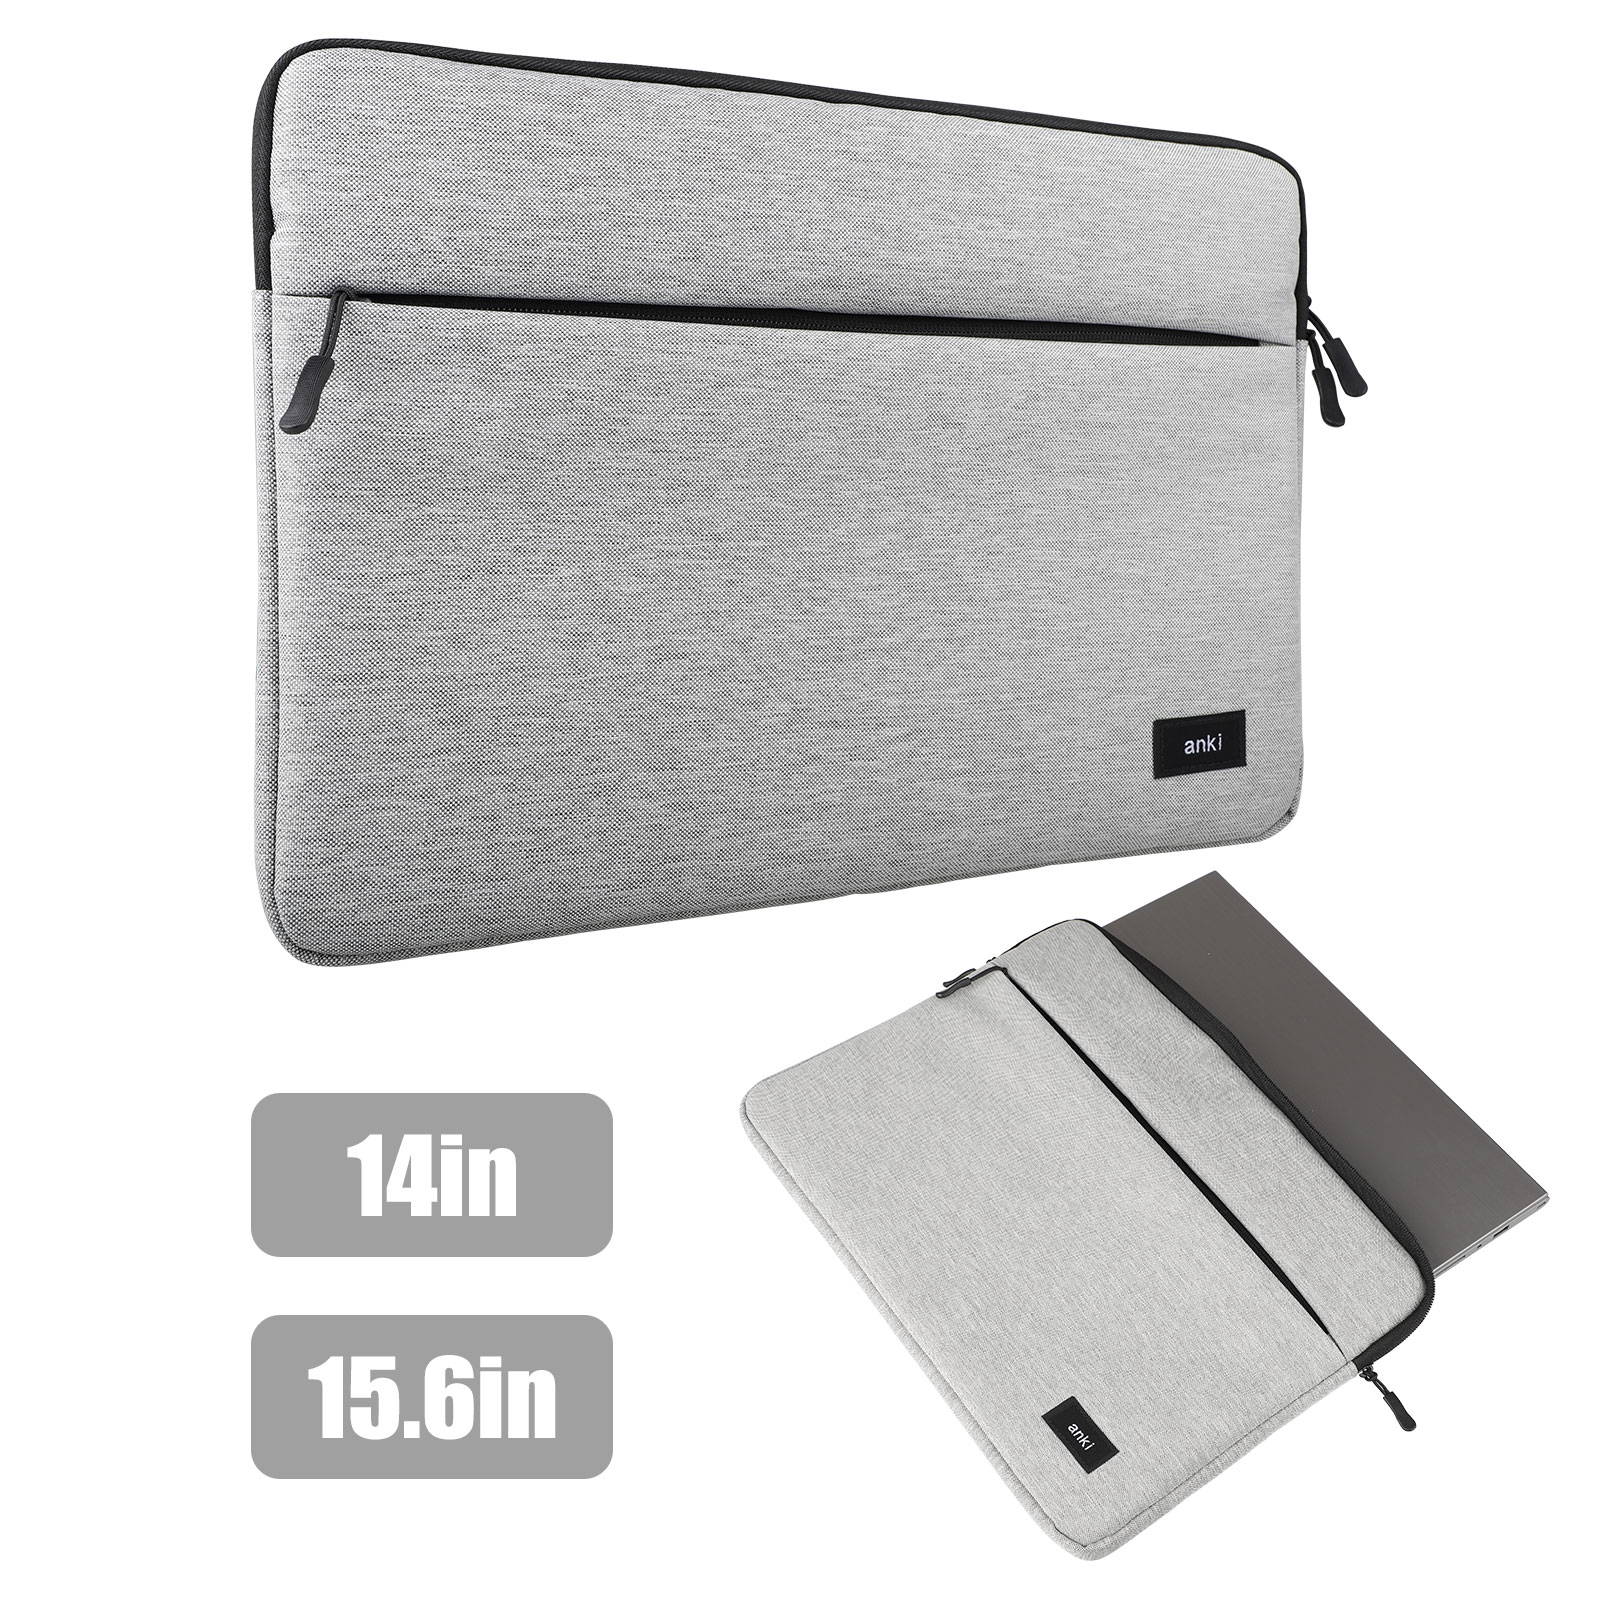 "TSV Laptop Sleeve Case Protective Bag, Ultrabook Notebook Carrying Case Handbag for 14"" 15"" Samsung Sony ASUS Acer Lenovo Dell HP Toshiba Chromebook Computers -Light Grey"